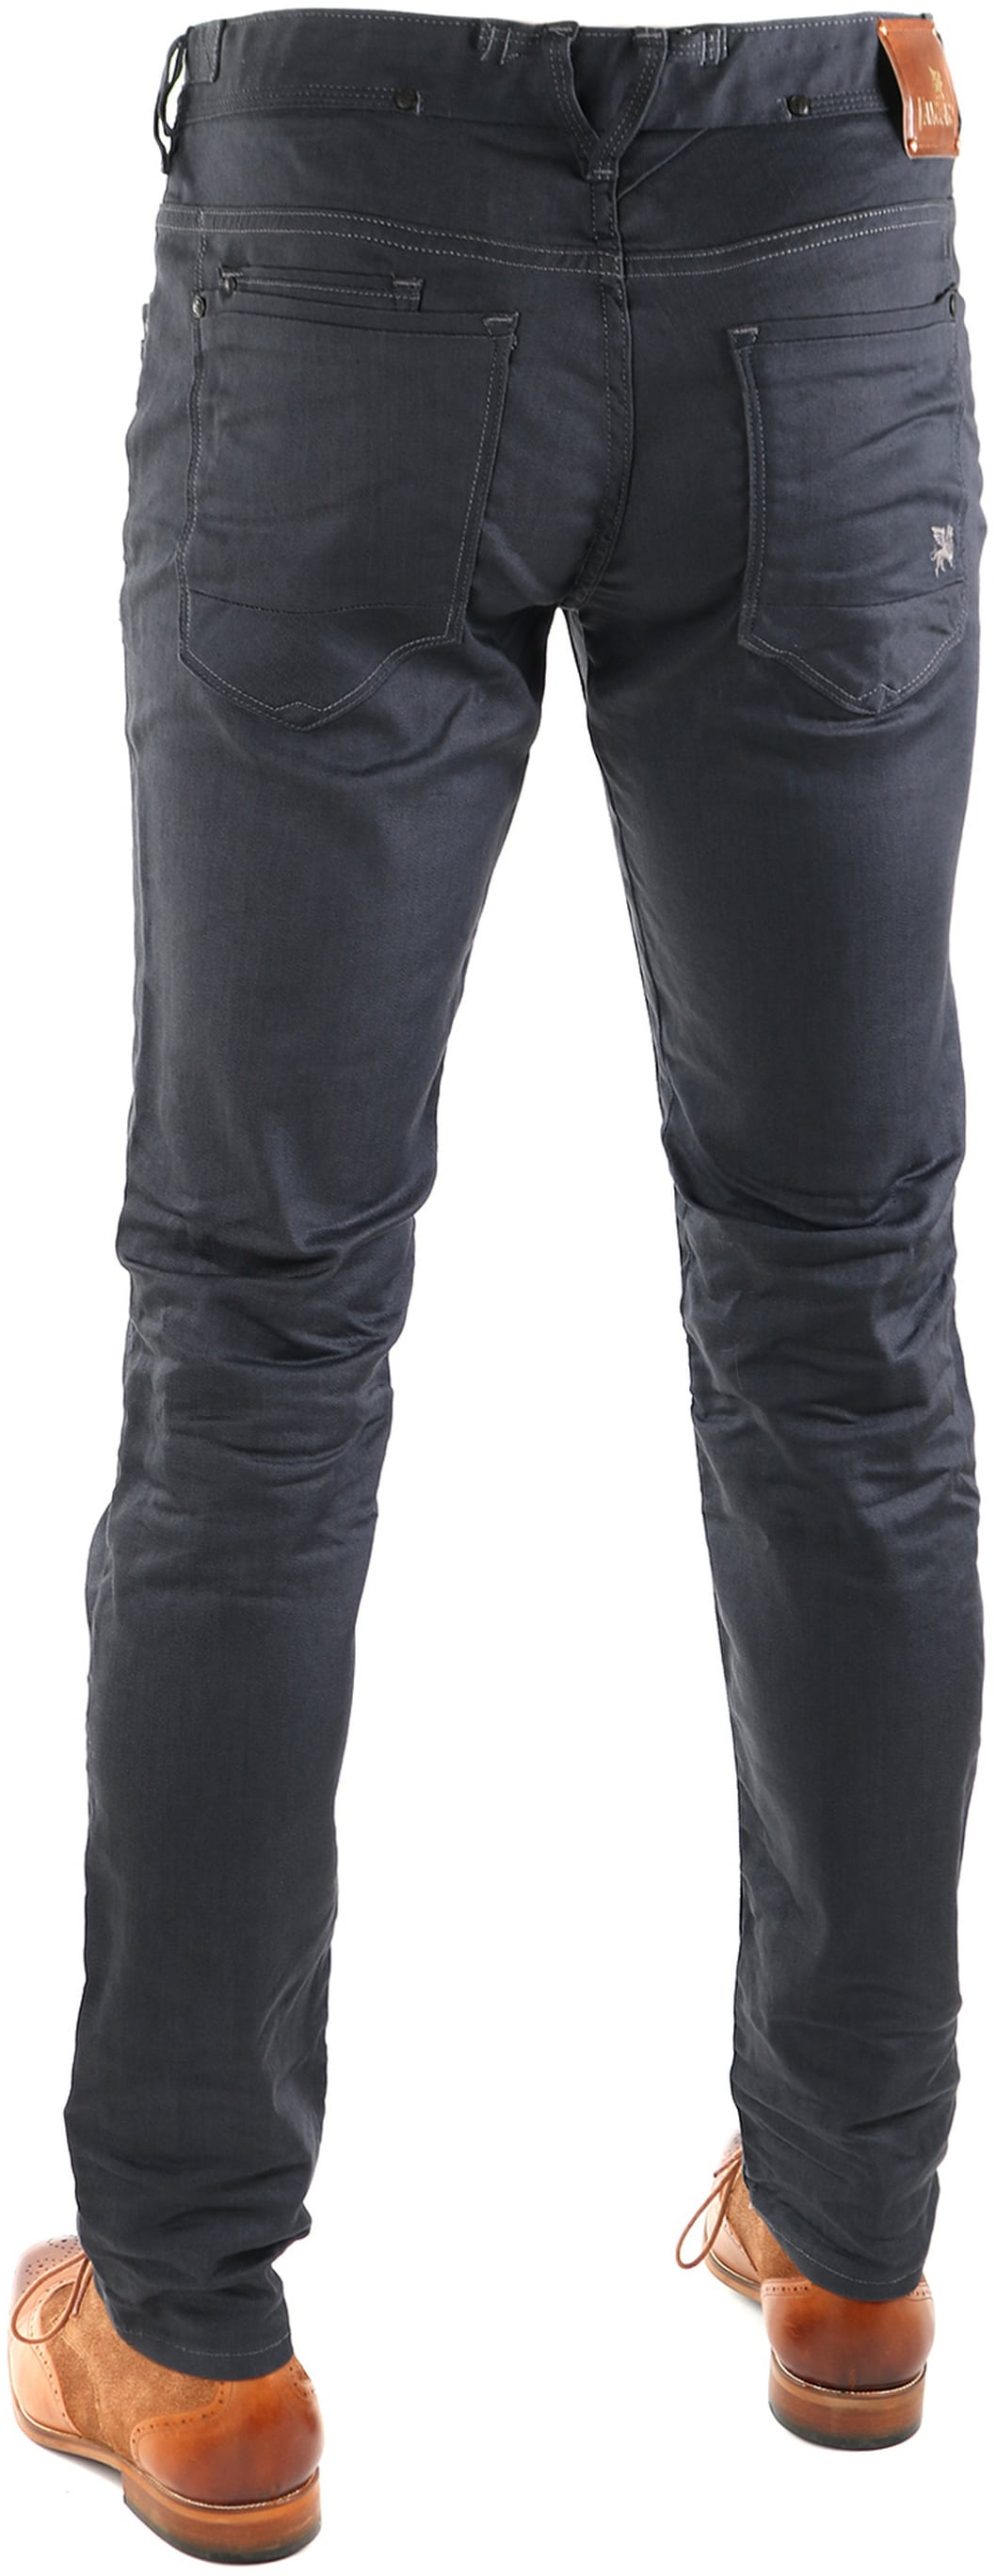 Vanguard V8 Racer Jeans Dark Grey foto 4